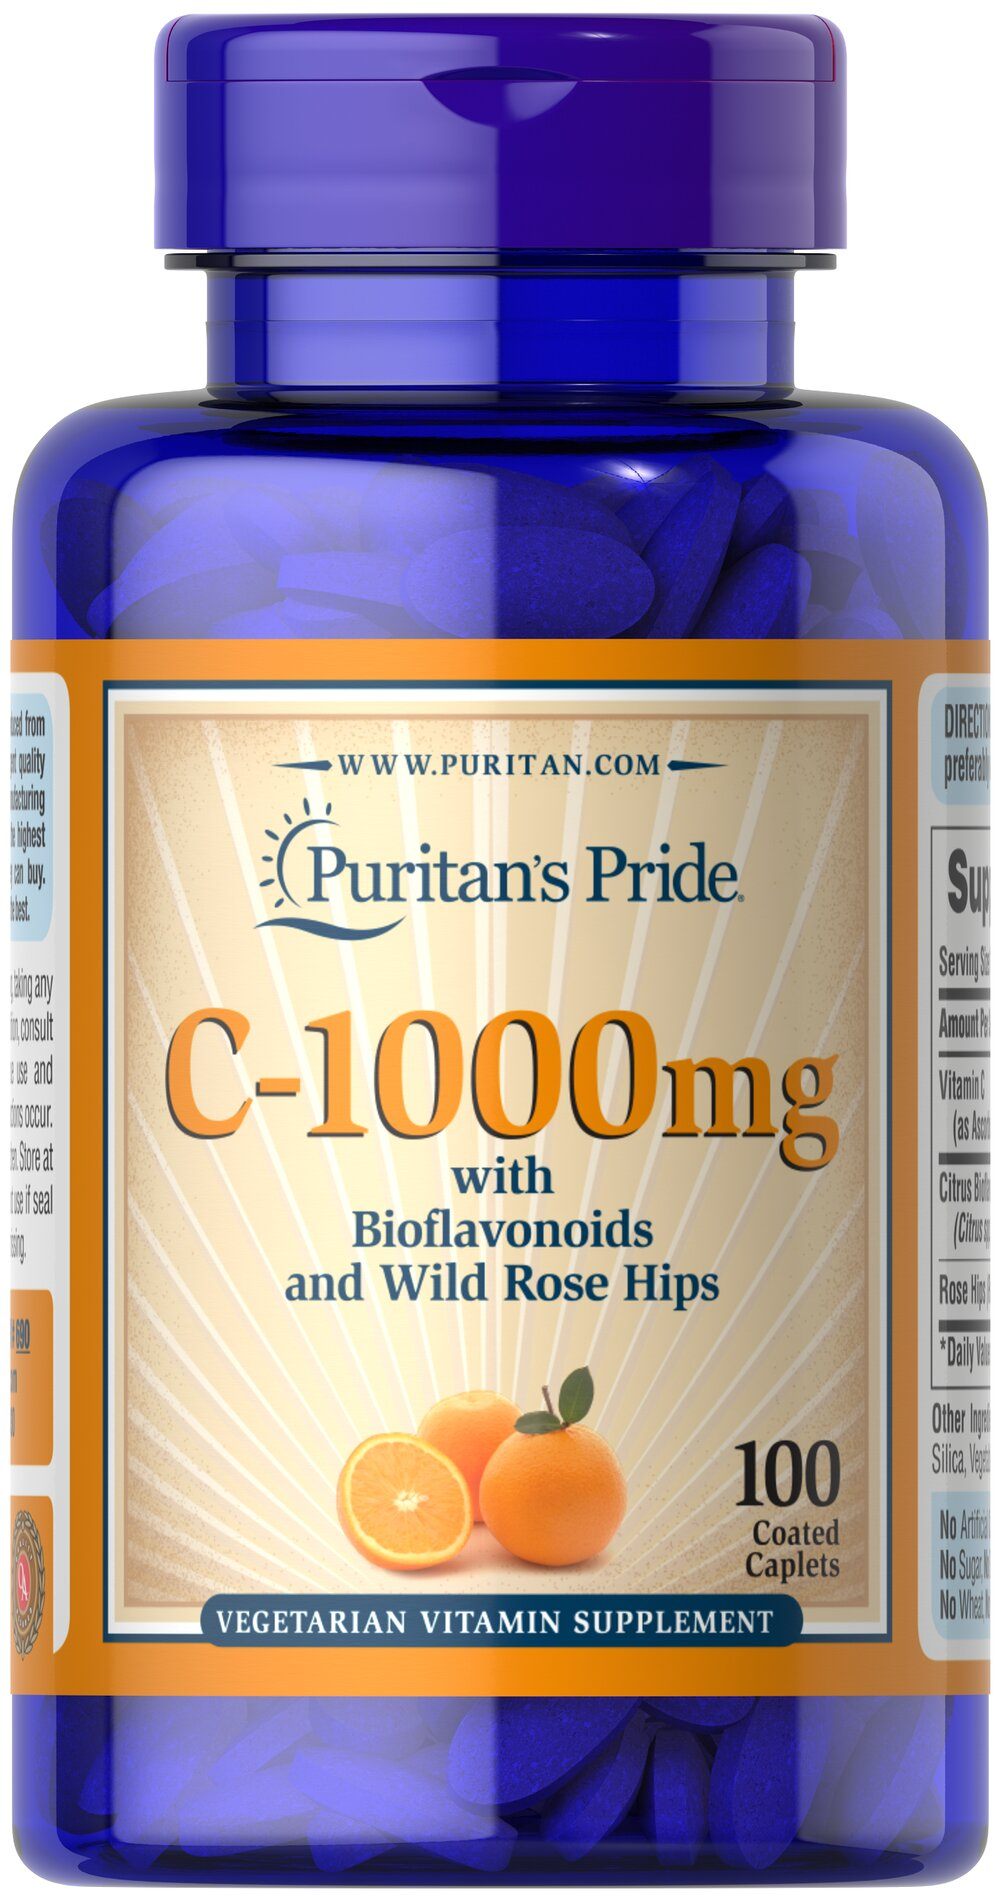 Vitamin C-1000 mg with Bioflavonoids & Rose Hips <p>Vitamin C is essential to many functions in the body and is one of the leading vitamins for immune support and helps fight cell-damaging free radicals.** Our product also includes Rose Hips, which help the body absorb and utilize Vitamin C.**</p><p>Offers superior antioxidant support.**</p><p>Supports healthy immune function and promotes well-being.**</p> 100 Caplets 1000 mg $9.12